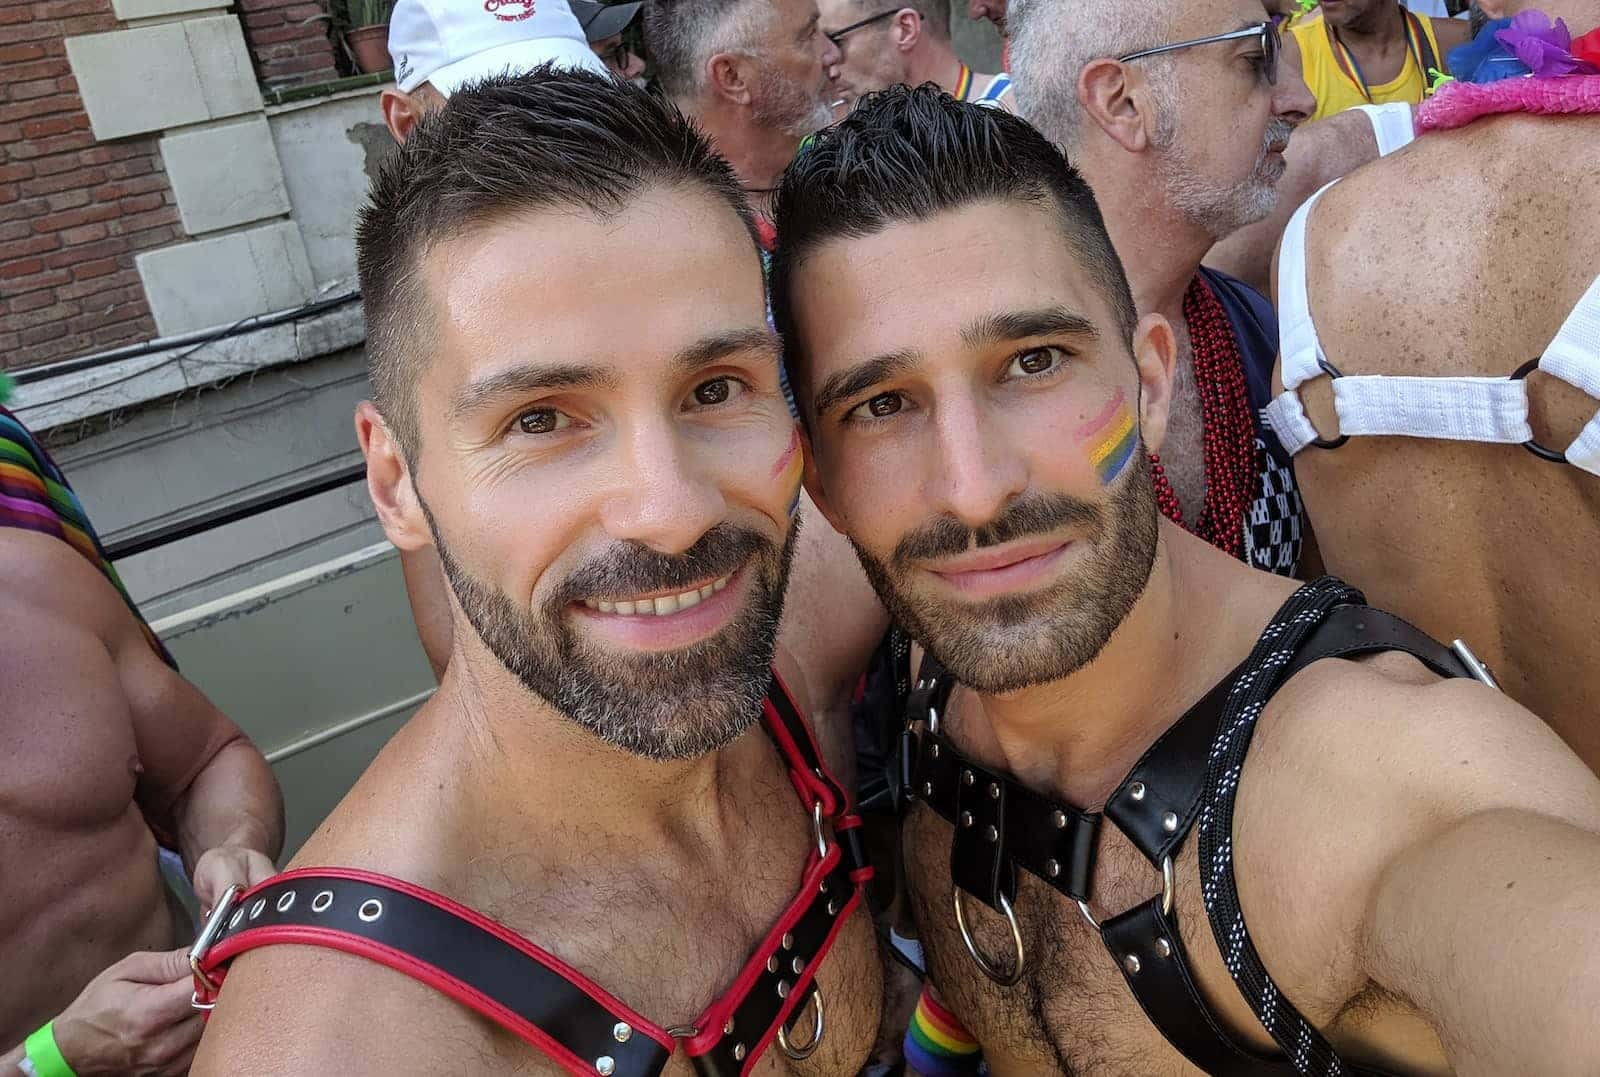 Shopping for harnesses at the gay shops in Barcelona